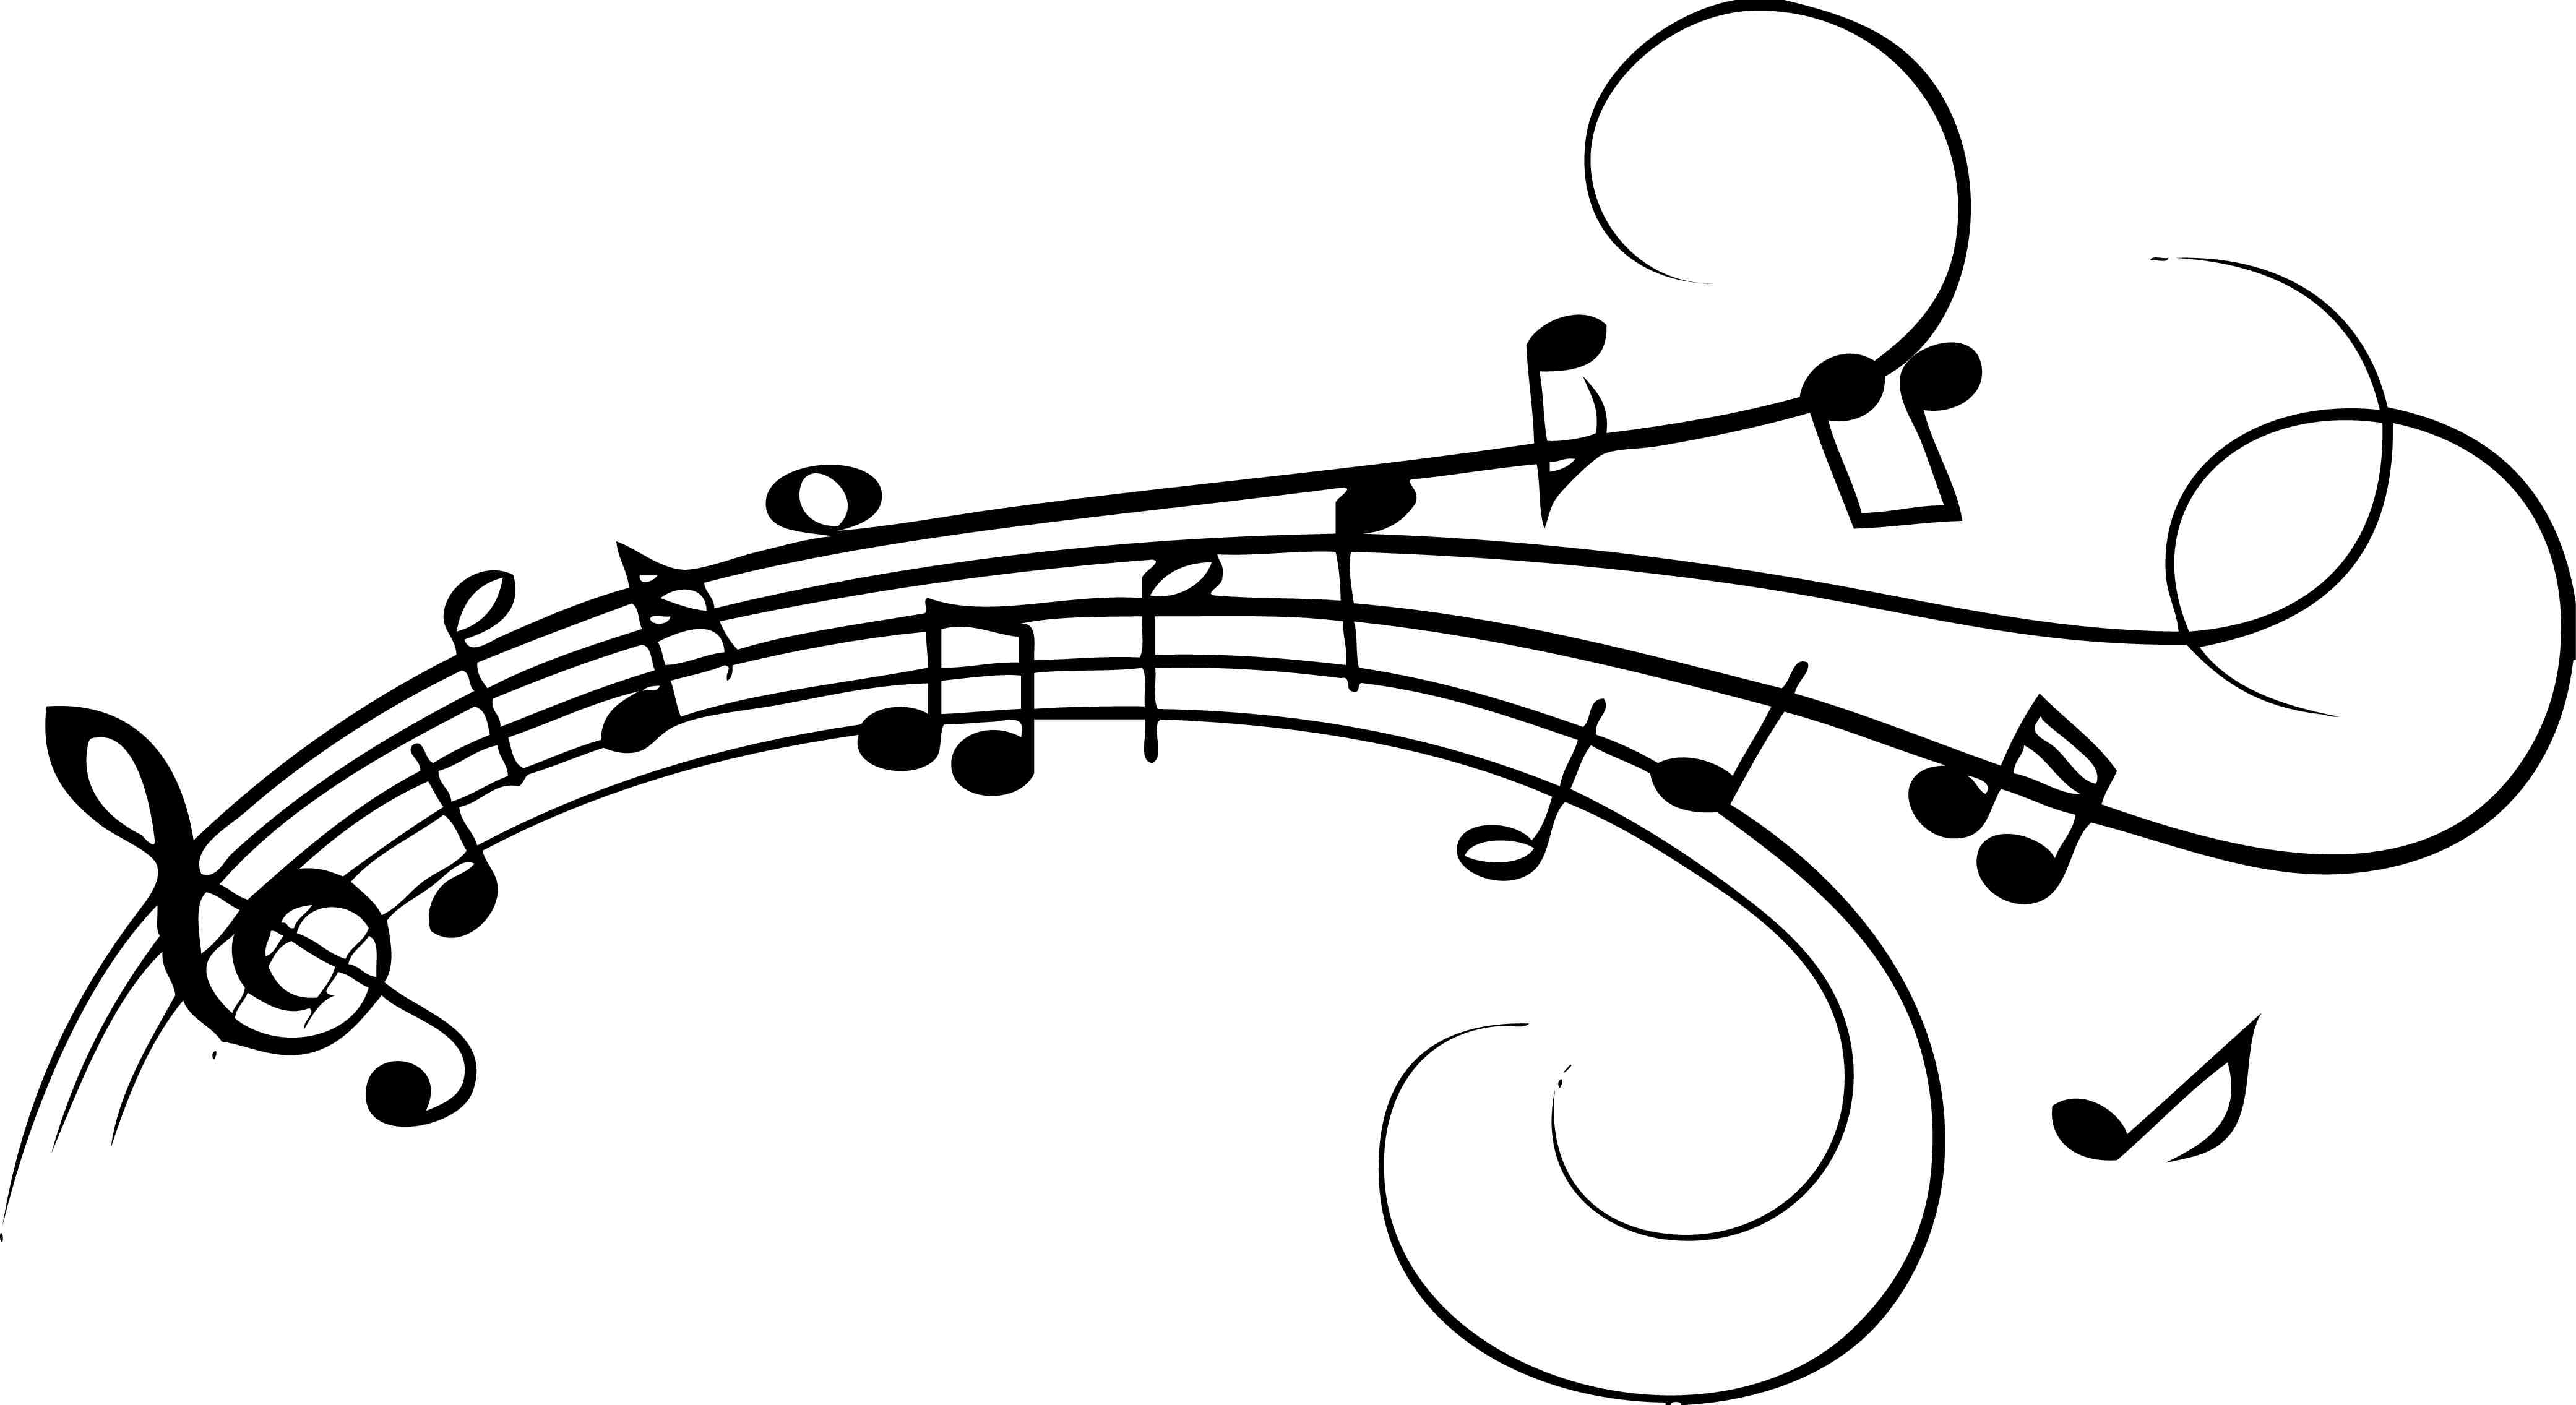 music notes line drawing at getdrawings com free for personal use music notes line drawing of music note clip art images music note clip art images